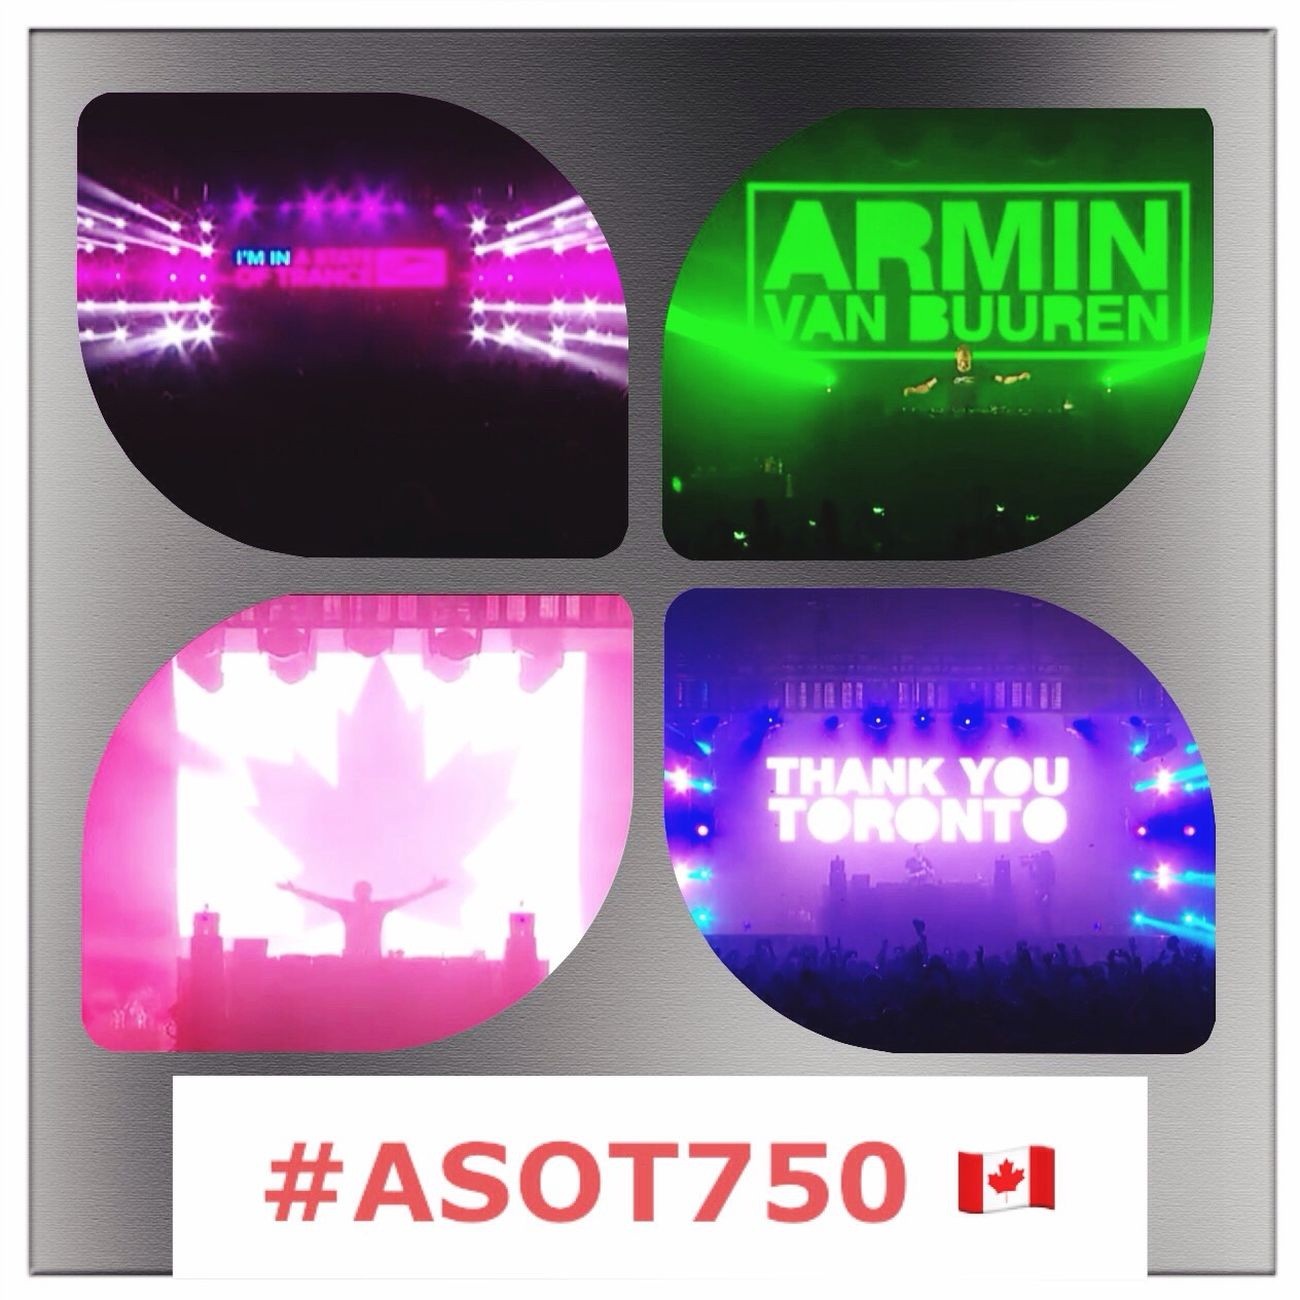 I'M IN A State Of Trance Toronto ♬ ♥ 🇨🇦 ♥ ♬ Thank You God of Trance Armin Van Buuren ☝️ ASOT750 ❤️